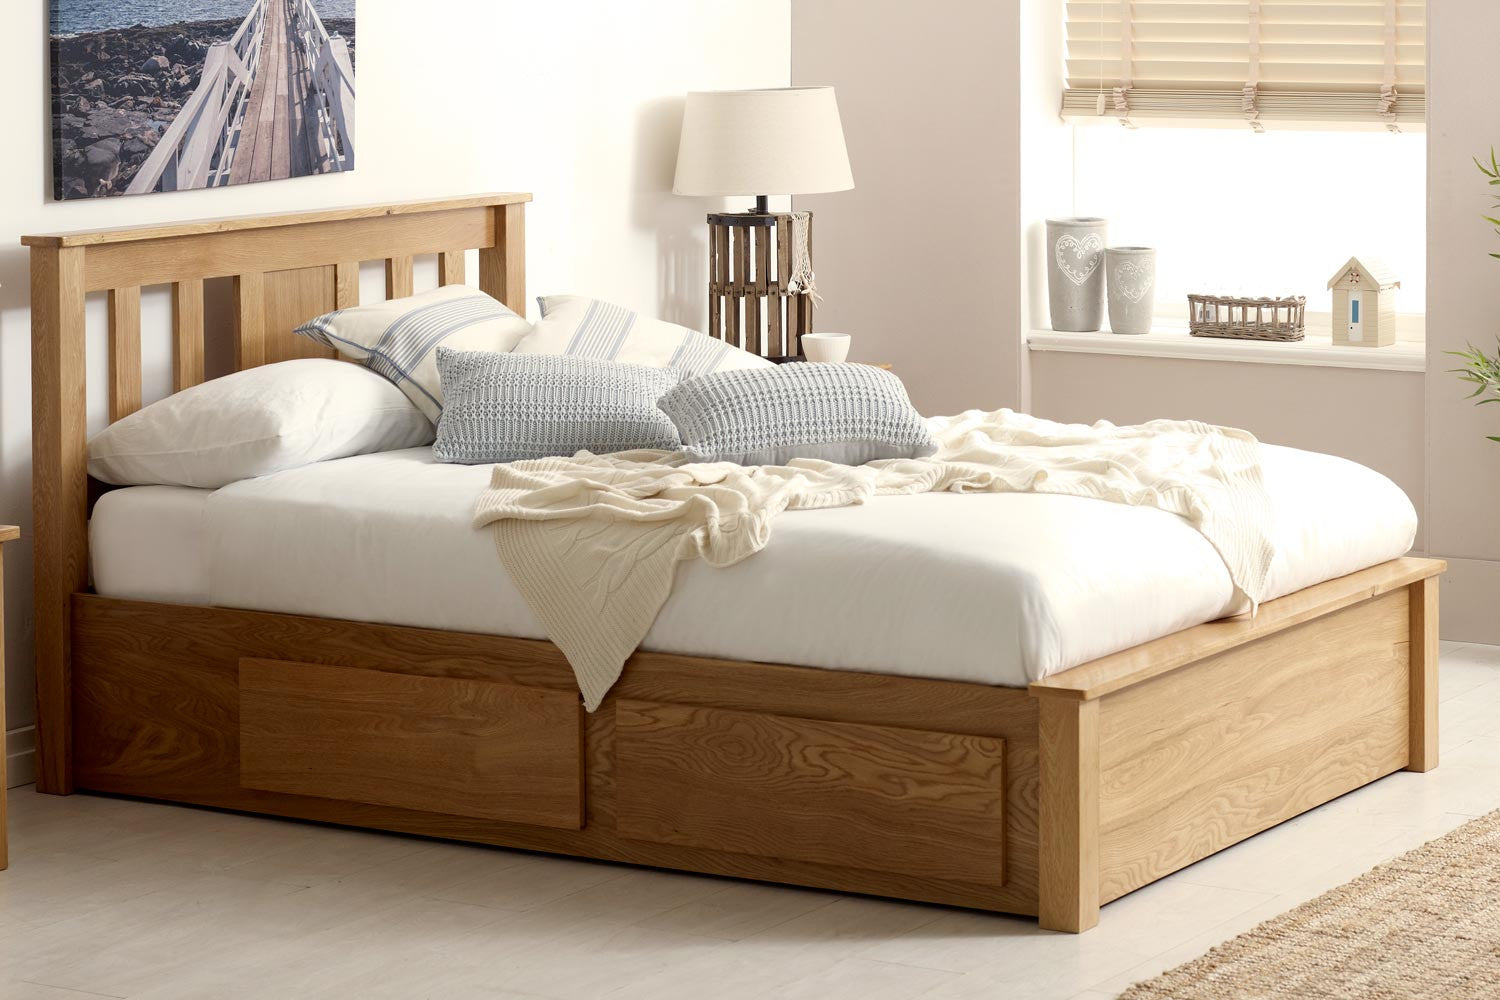 Wimbledon solid oak storage bed 4ft6 double the oak bed store Unfinished childrens bedroom furniture